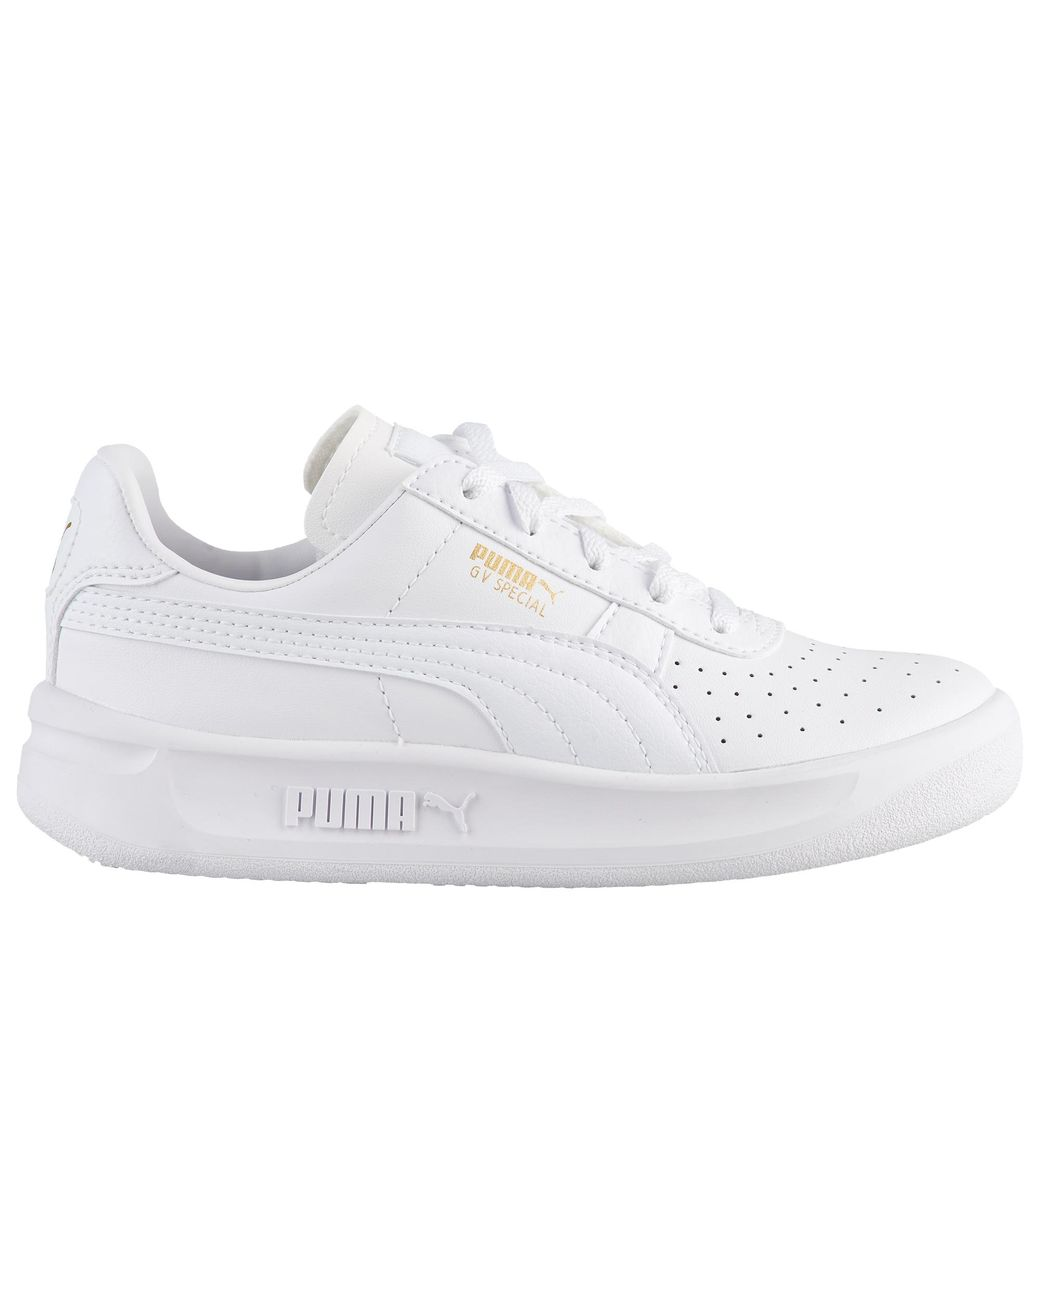 b39fd858146 PUMA - White Gv Special Tennis Shoes for Men - Lyst